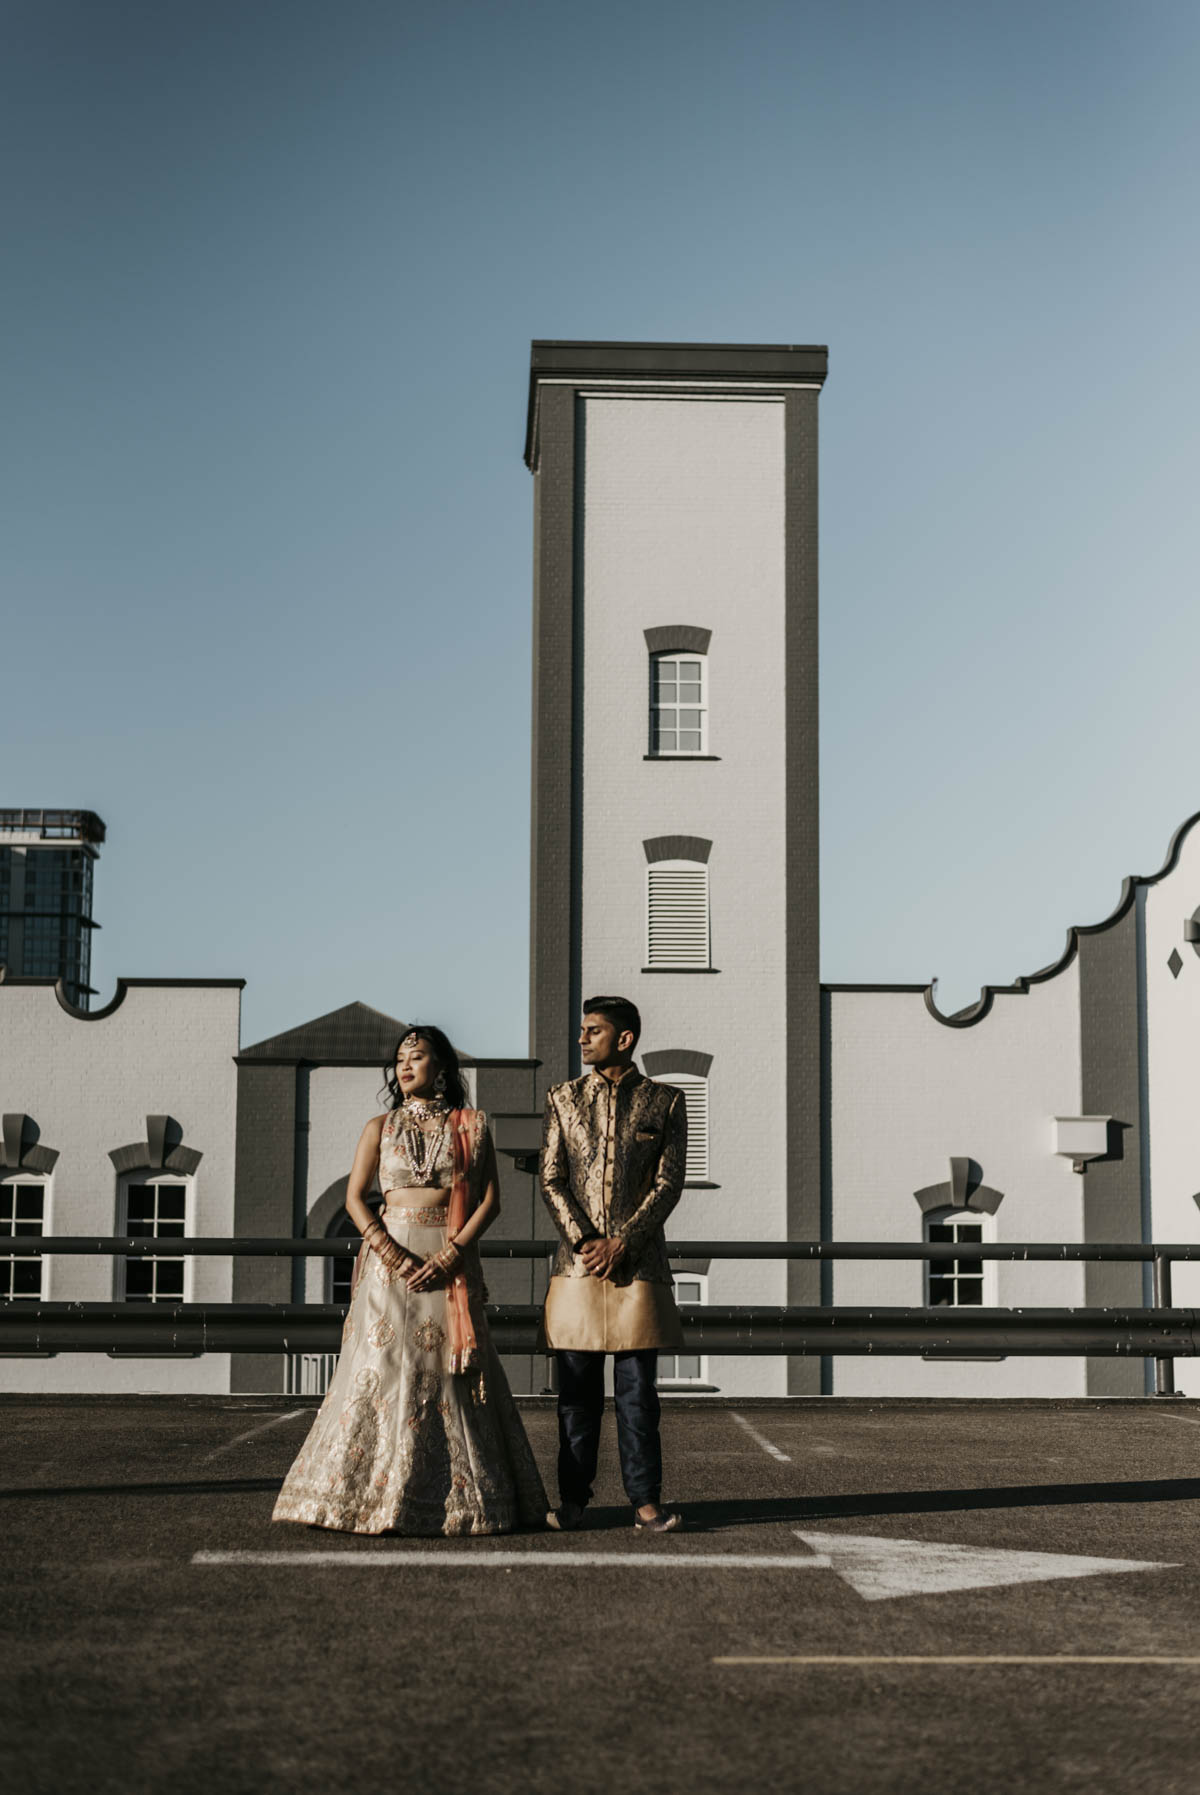 Shay and Uppi's muticultural wedding took place in Brisbane, Australia. They were both dressed in traditional Indian attire for their wedding reception, with Shay dressed in a bridal lehenga and Uppi in a sherwani suit. Photography captured by Sal Singh Photography.